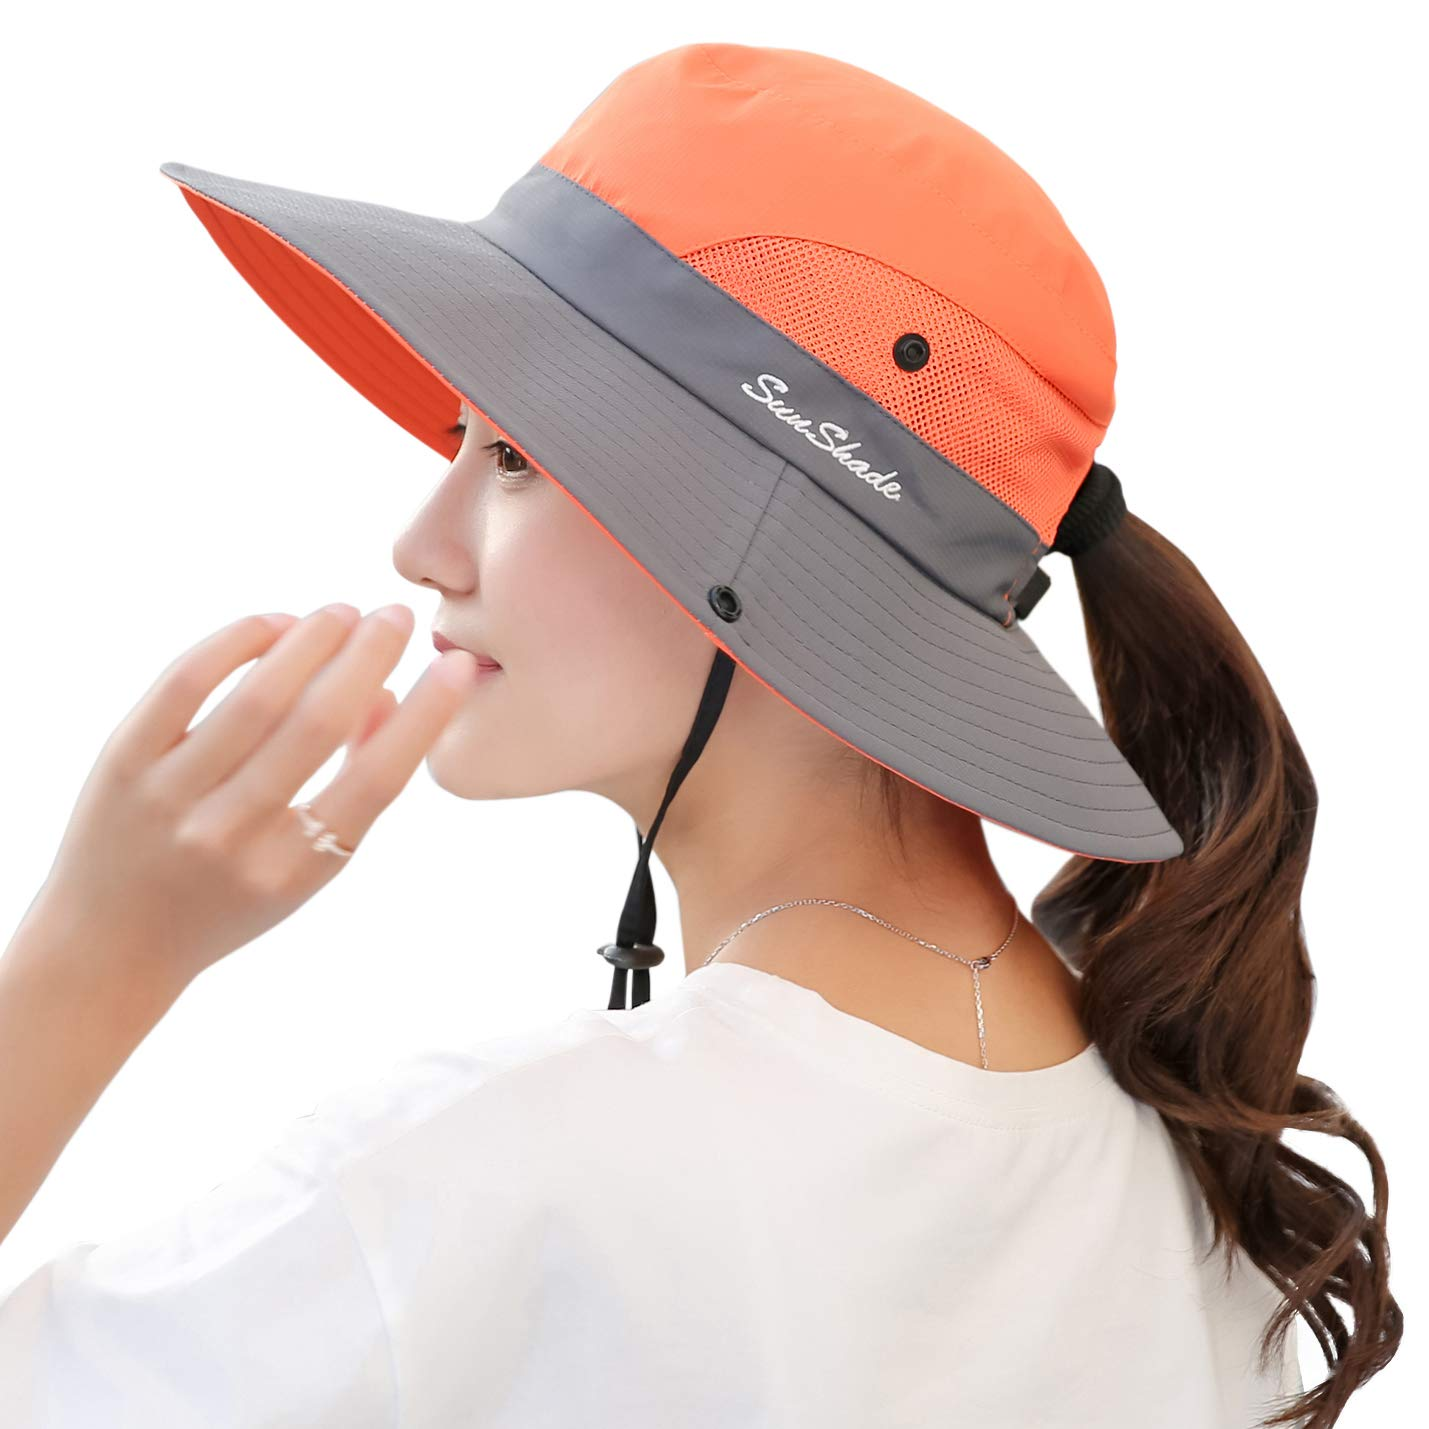 ab2b5232aa3 Women Outdoor Sun Hat UV Protection Wide Brim Mesh Foldable Safari Beach  Fishing Bucket Cap Orange at Amazon Women s Clothing store